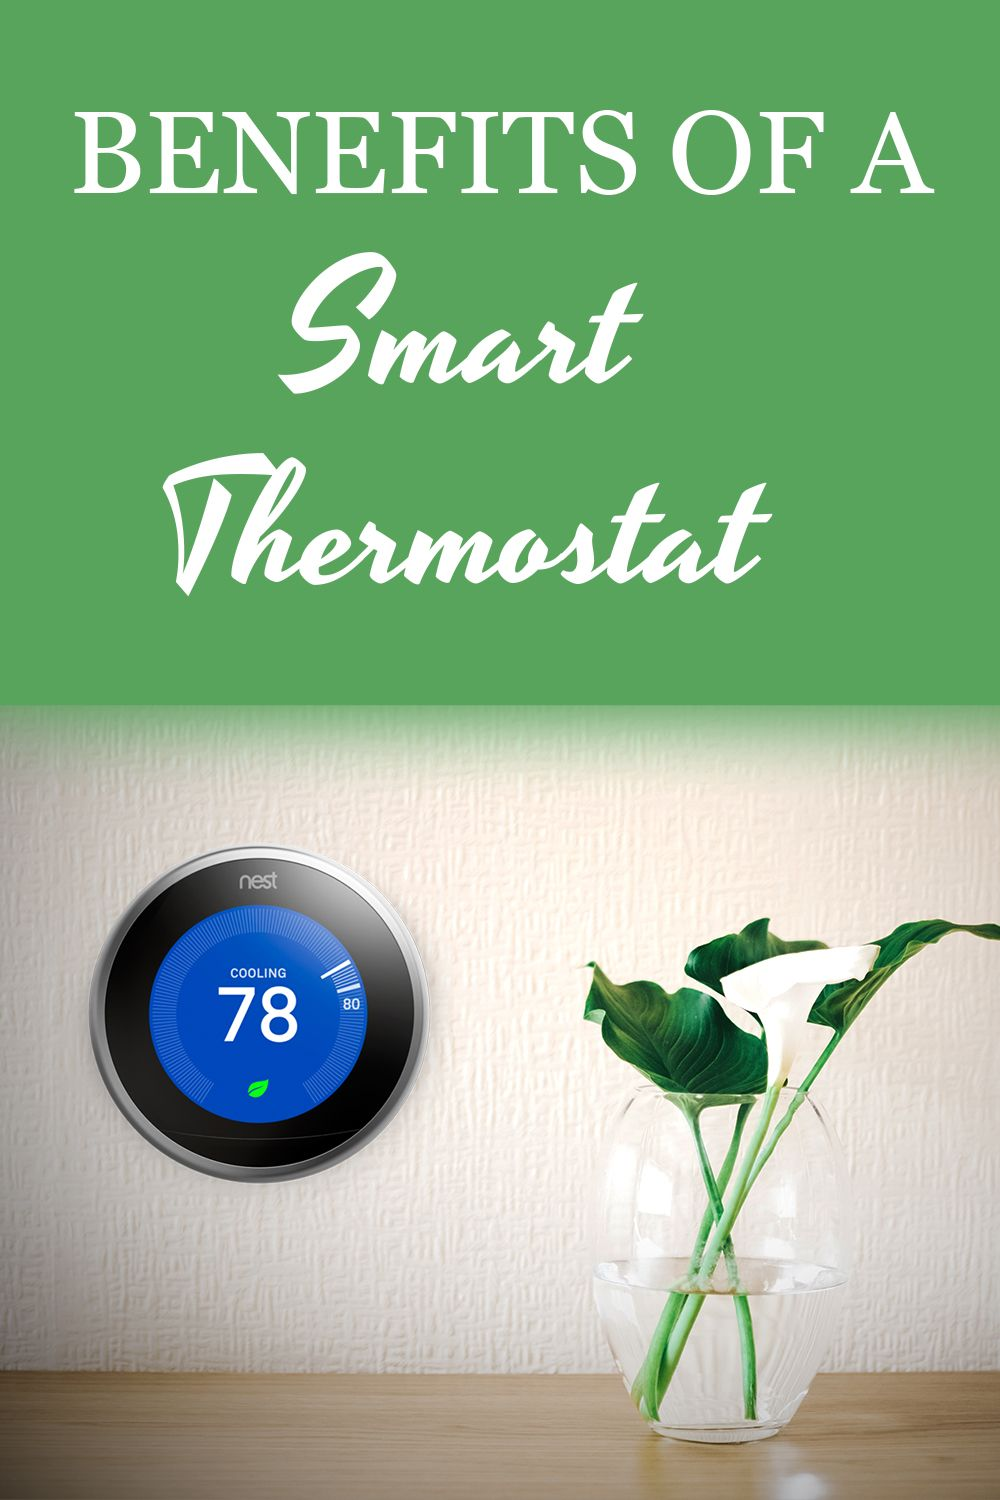 Save on energy costs with a smart thermostat. Home